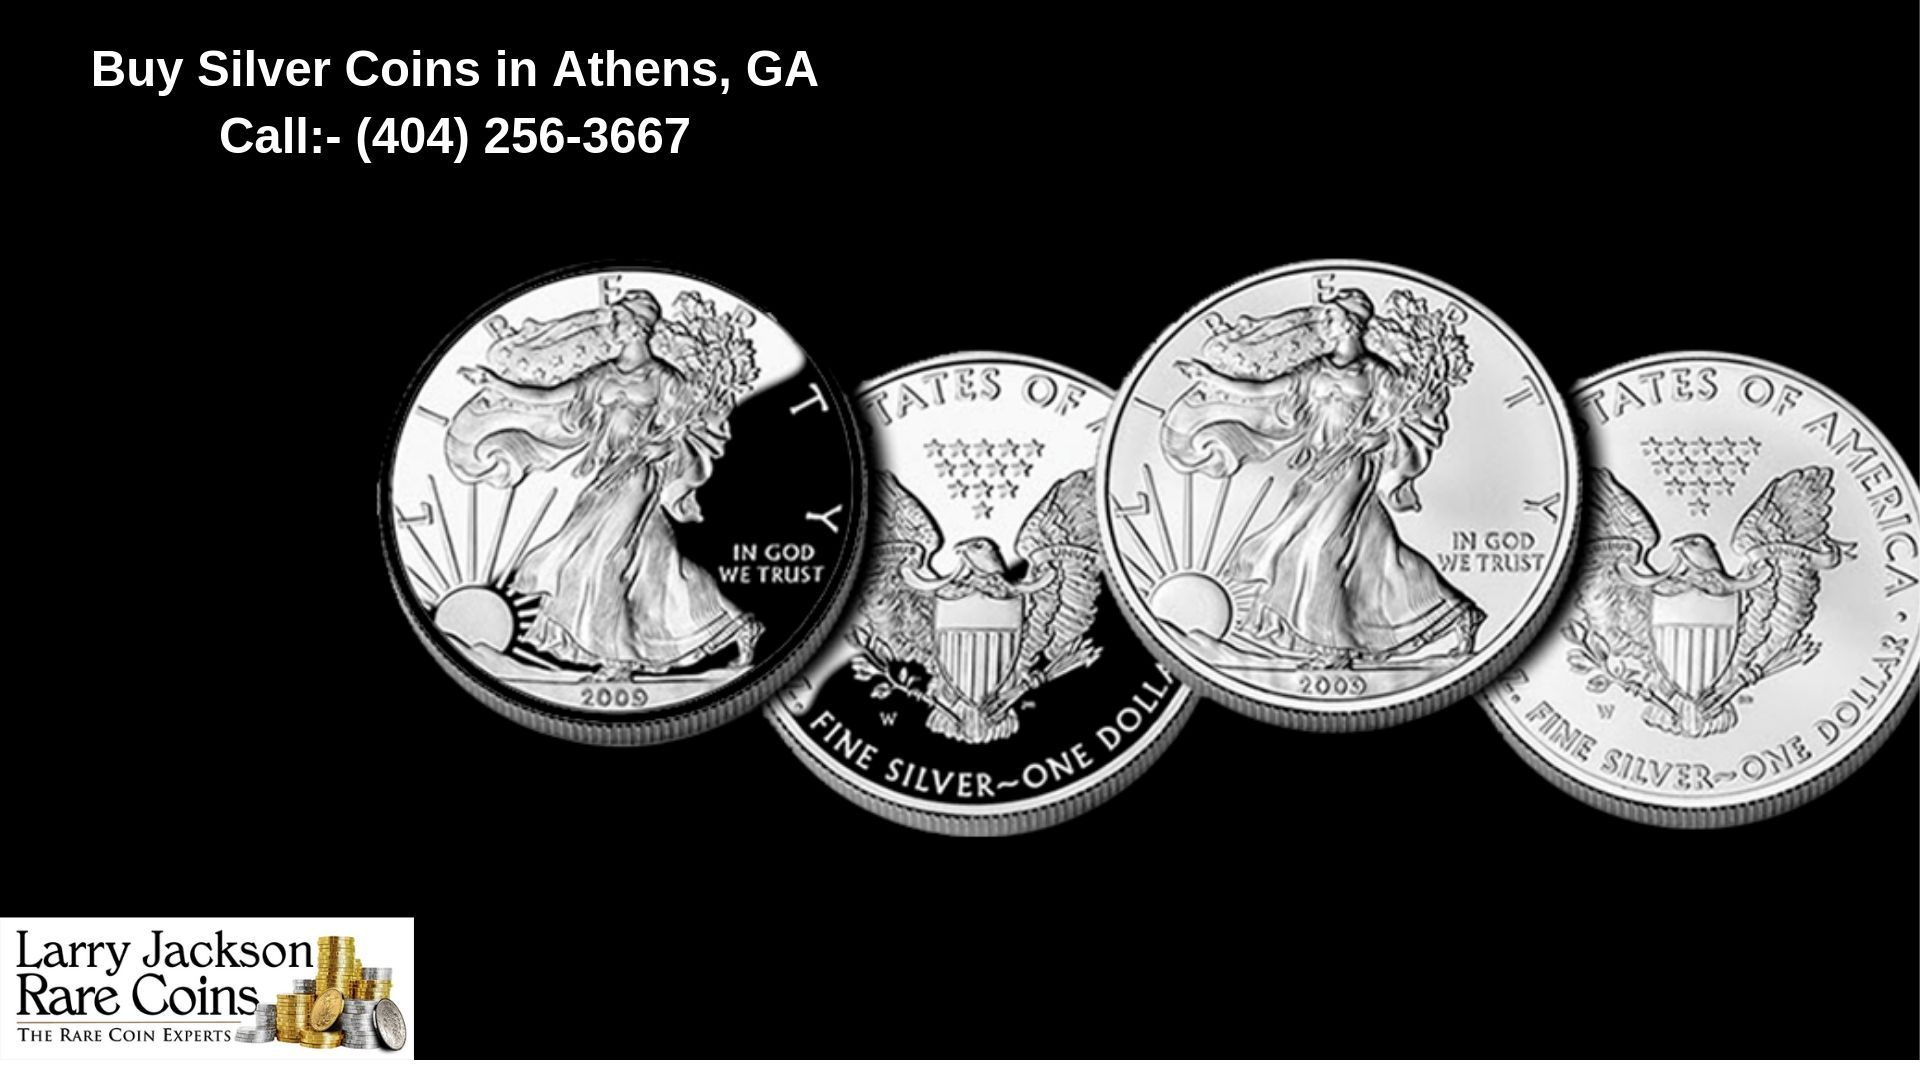 Coins Athens Rare Coins Larry Jackson Numismatics Larry Jackson Numismatics Buy Silver Coins Silver Coins Rare Coins